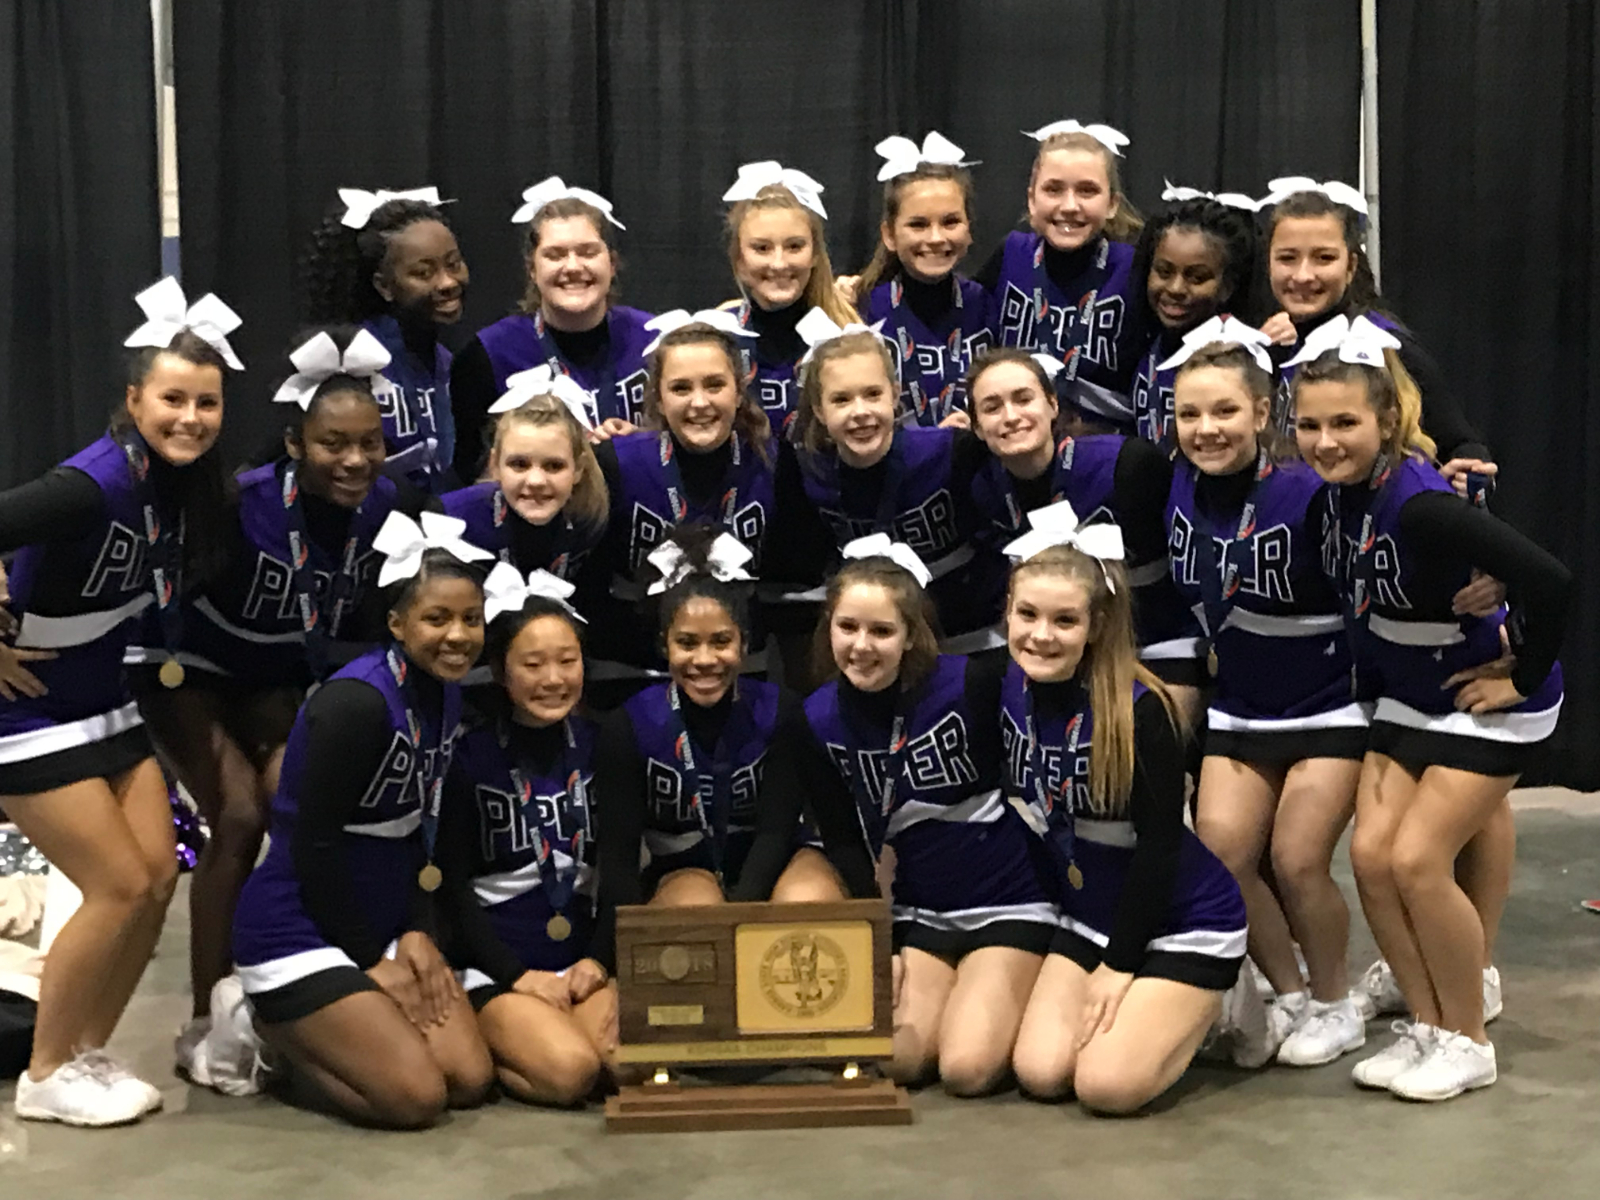 PIPER CHEER 4A STATE CHAMPIONS!!!!